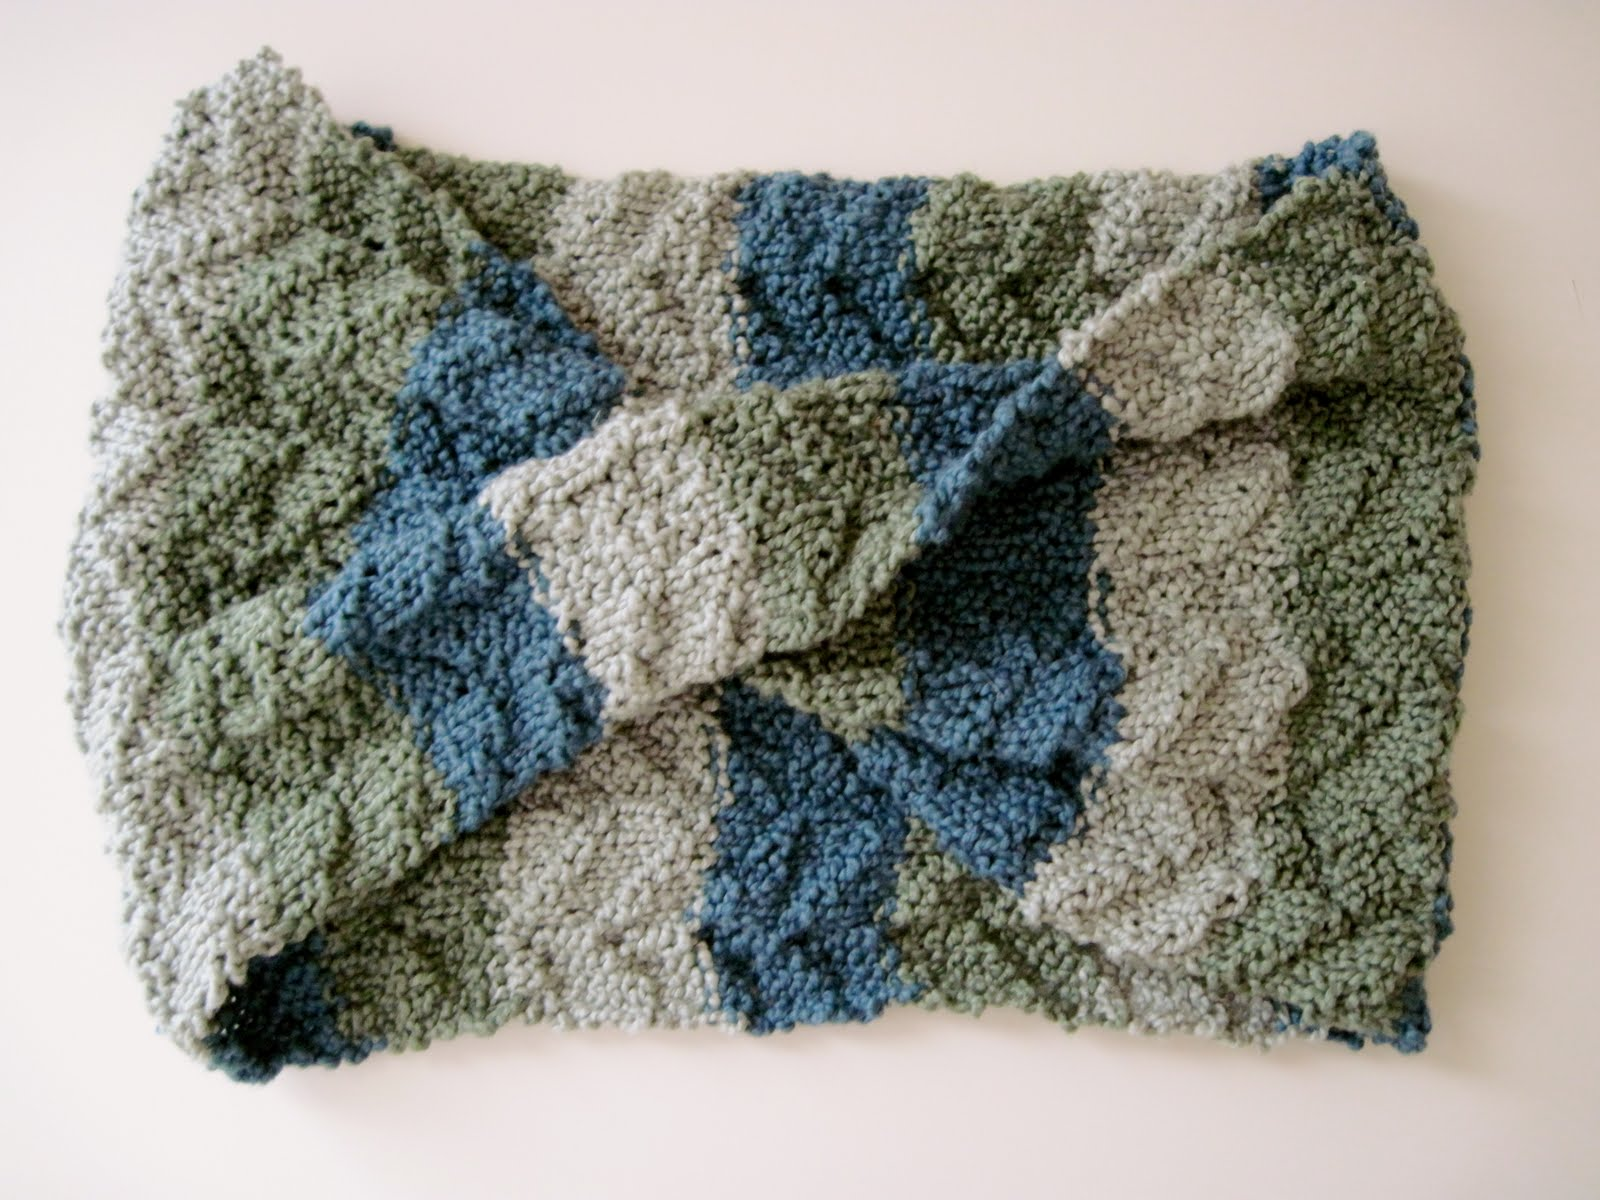 Knitting Patterns Crochet : free knitting pattern tide pool scarf Free Patterns Knit Crochet ...